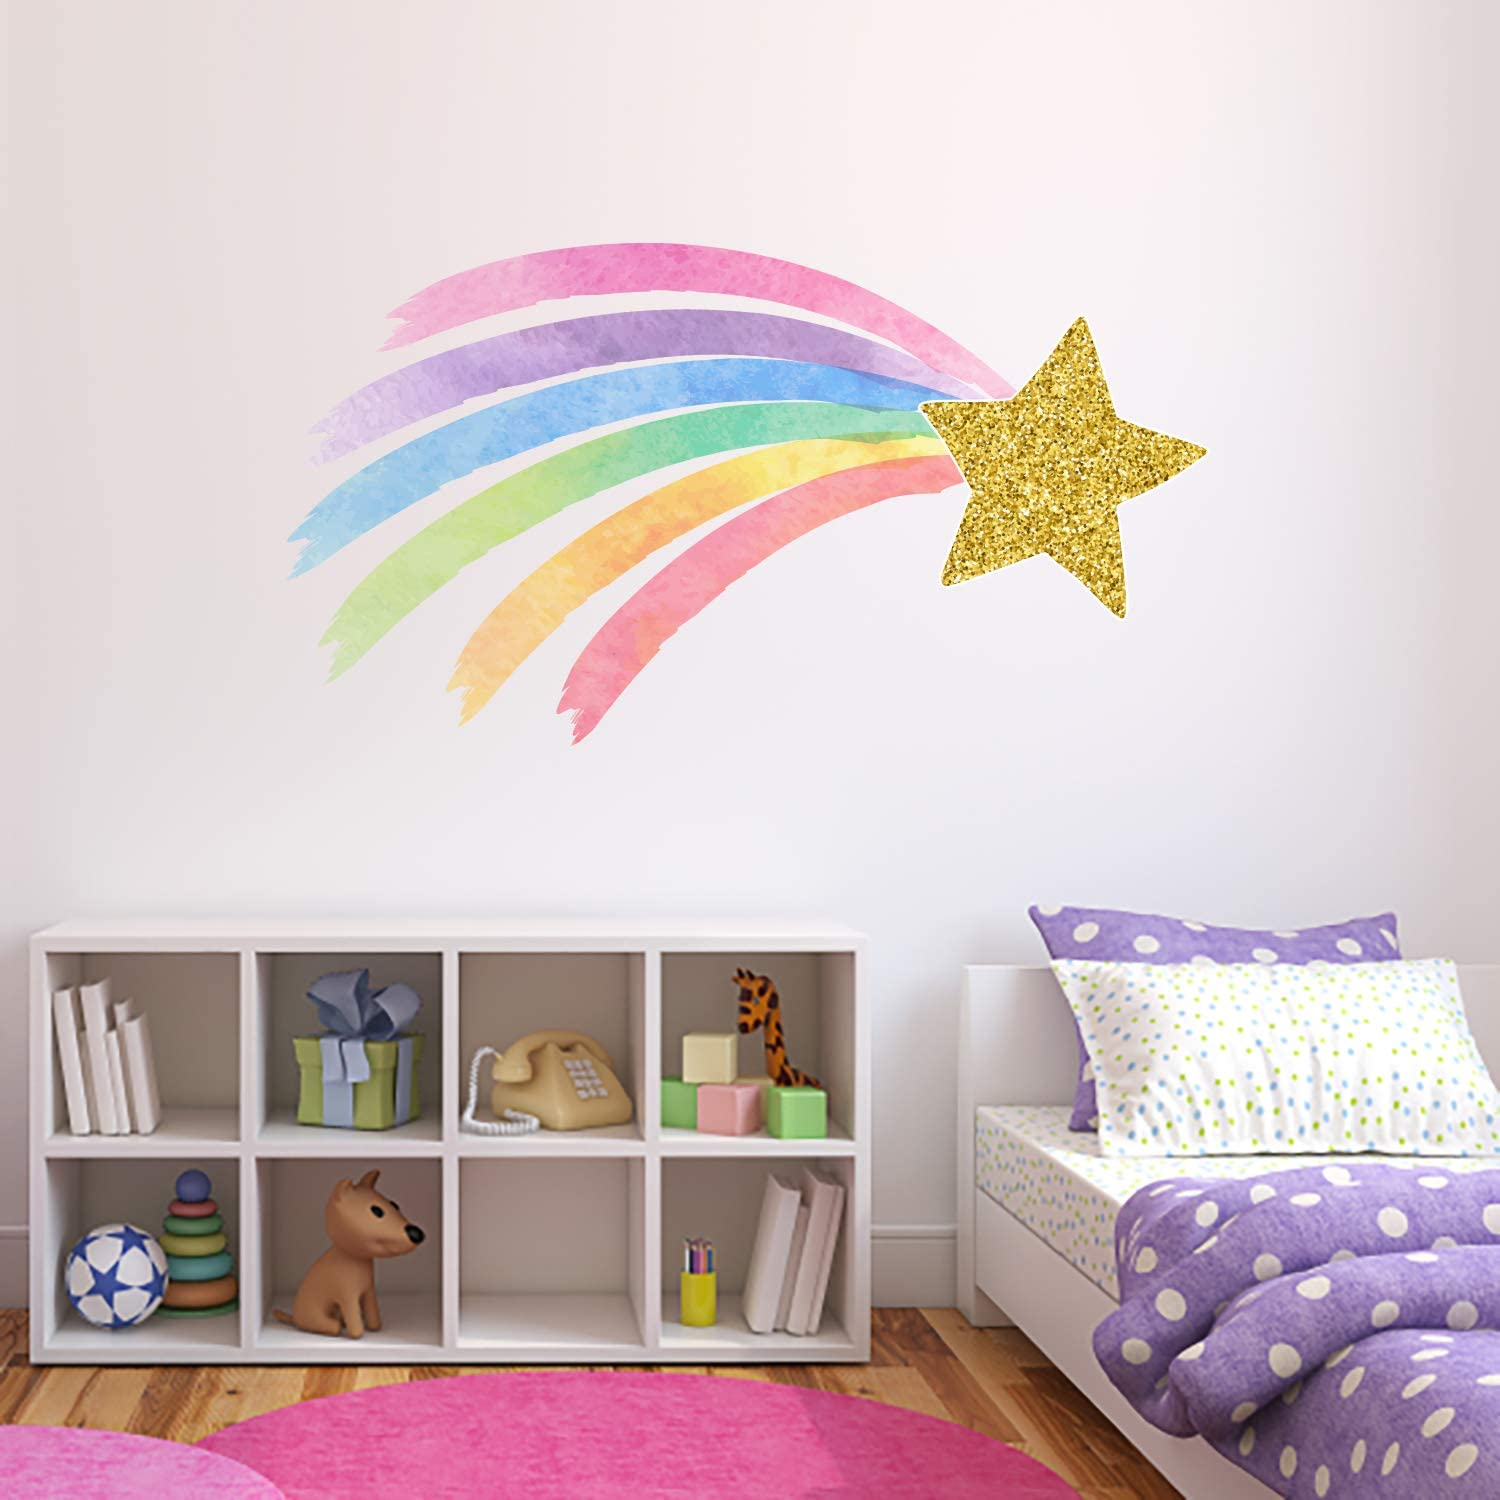 Easy-to-use Shooting Star Ultra-Cheap Deals Rainbow Wall Decal Pastel Watercolor Nurse Unicorn